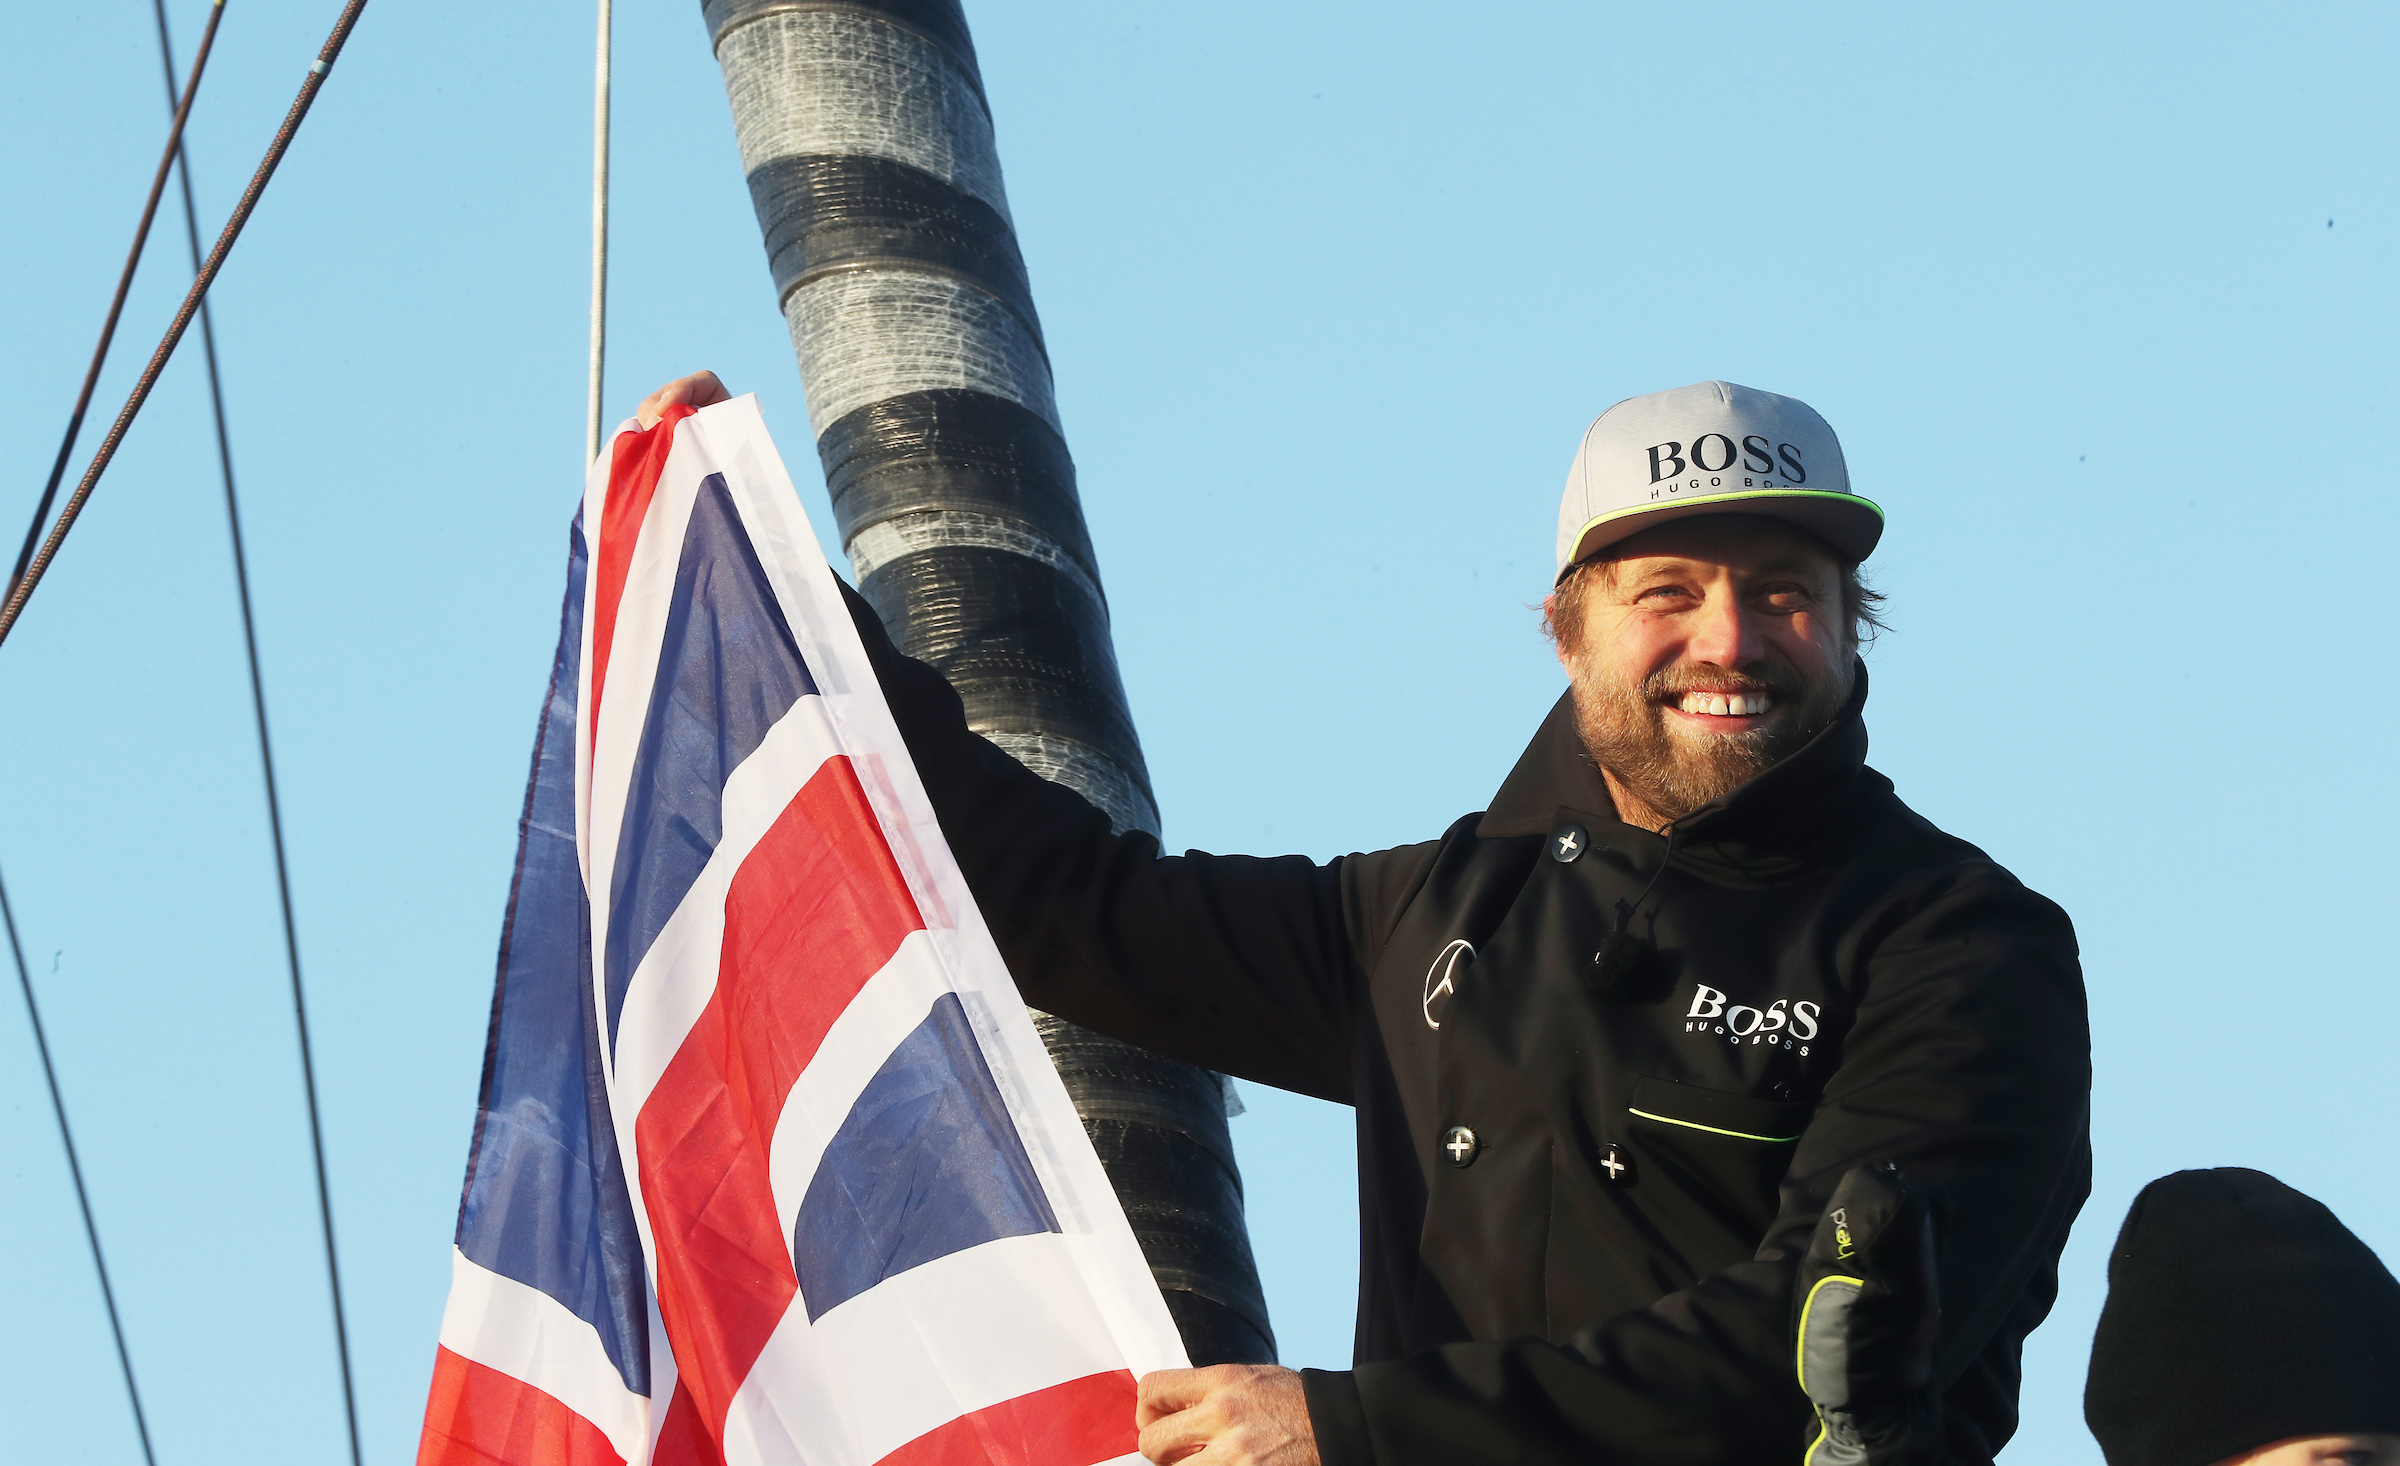 Hampshire sailor to be given a hero's welcome after Vendee Globe epic